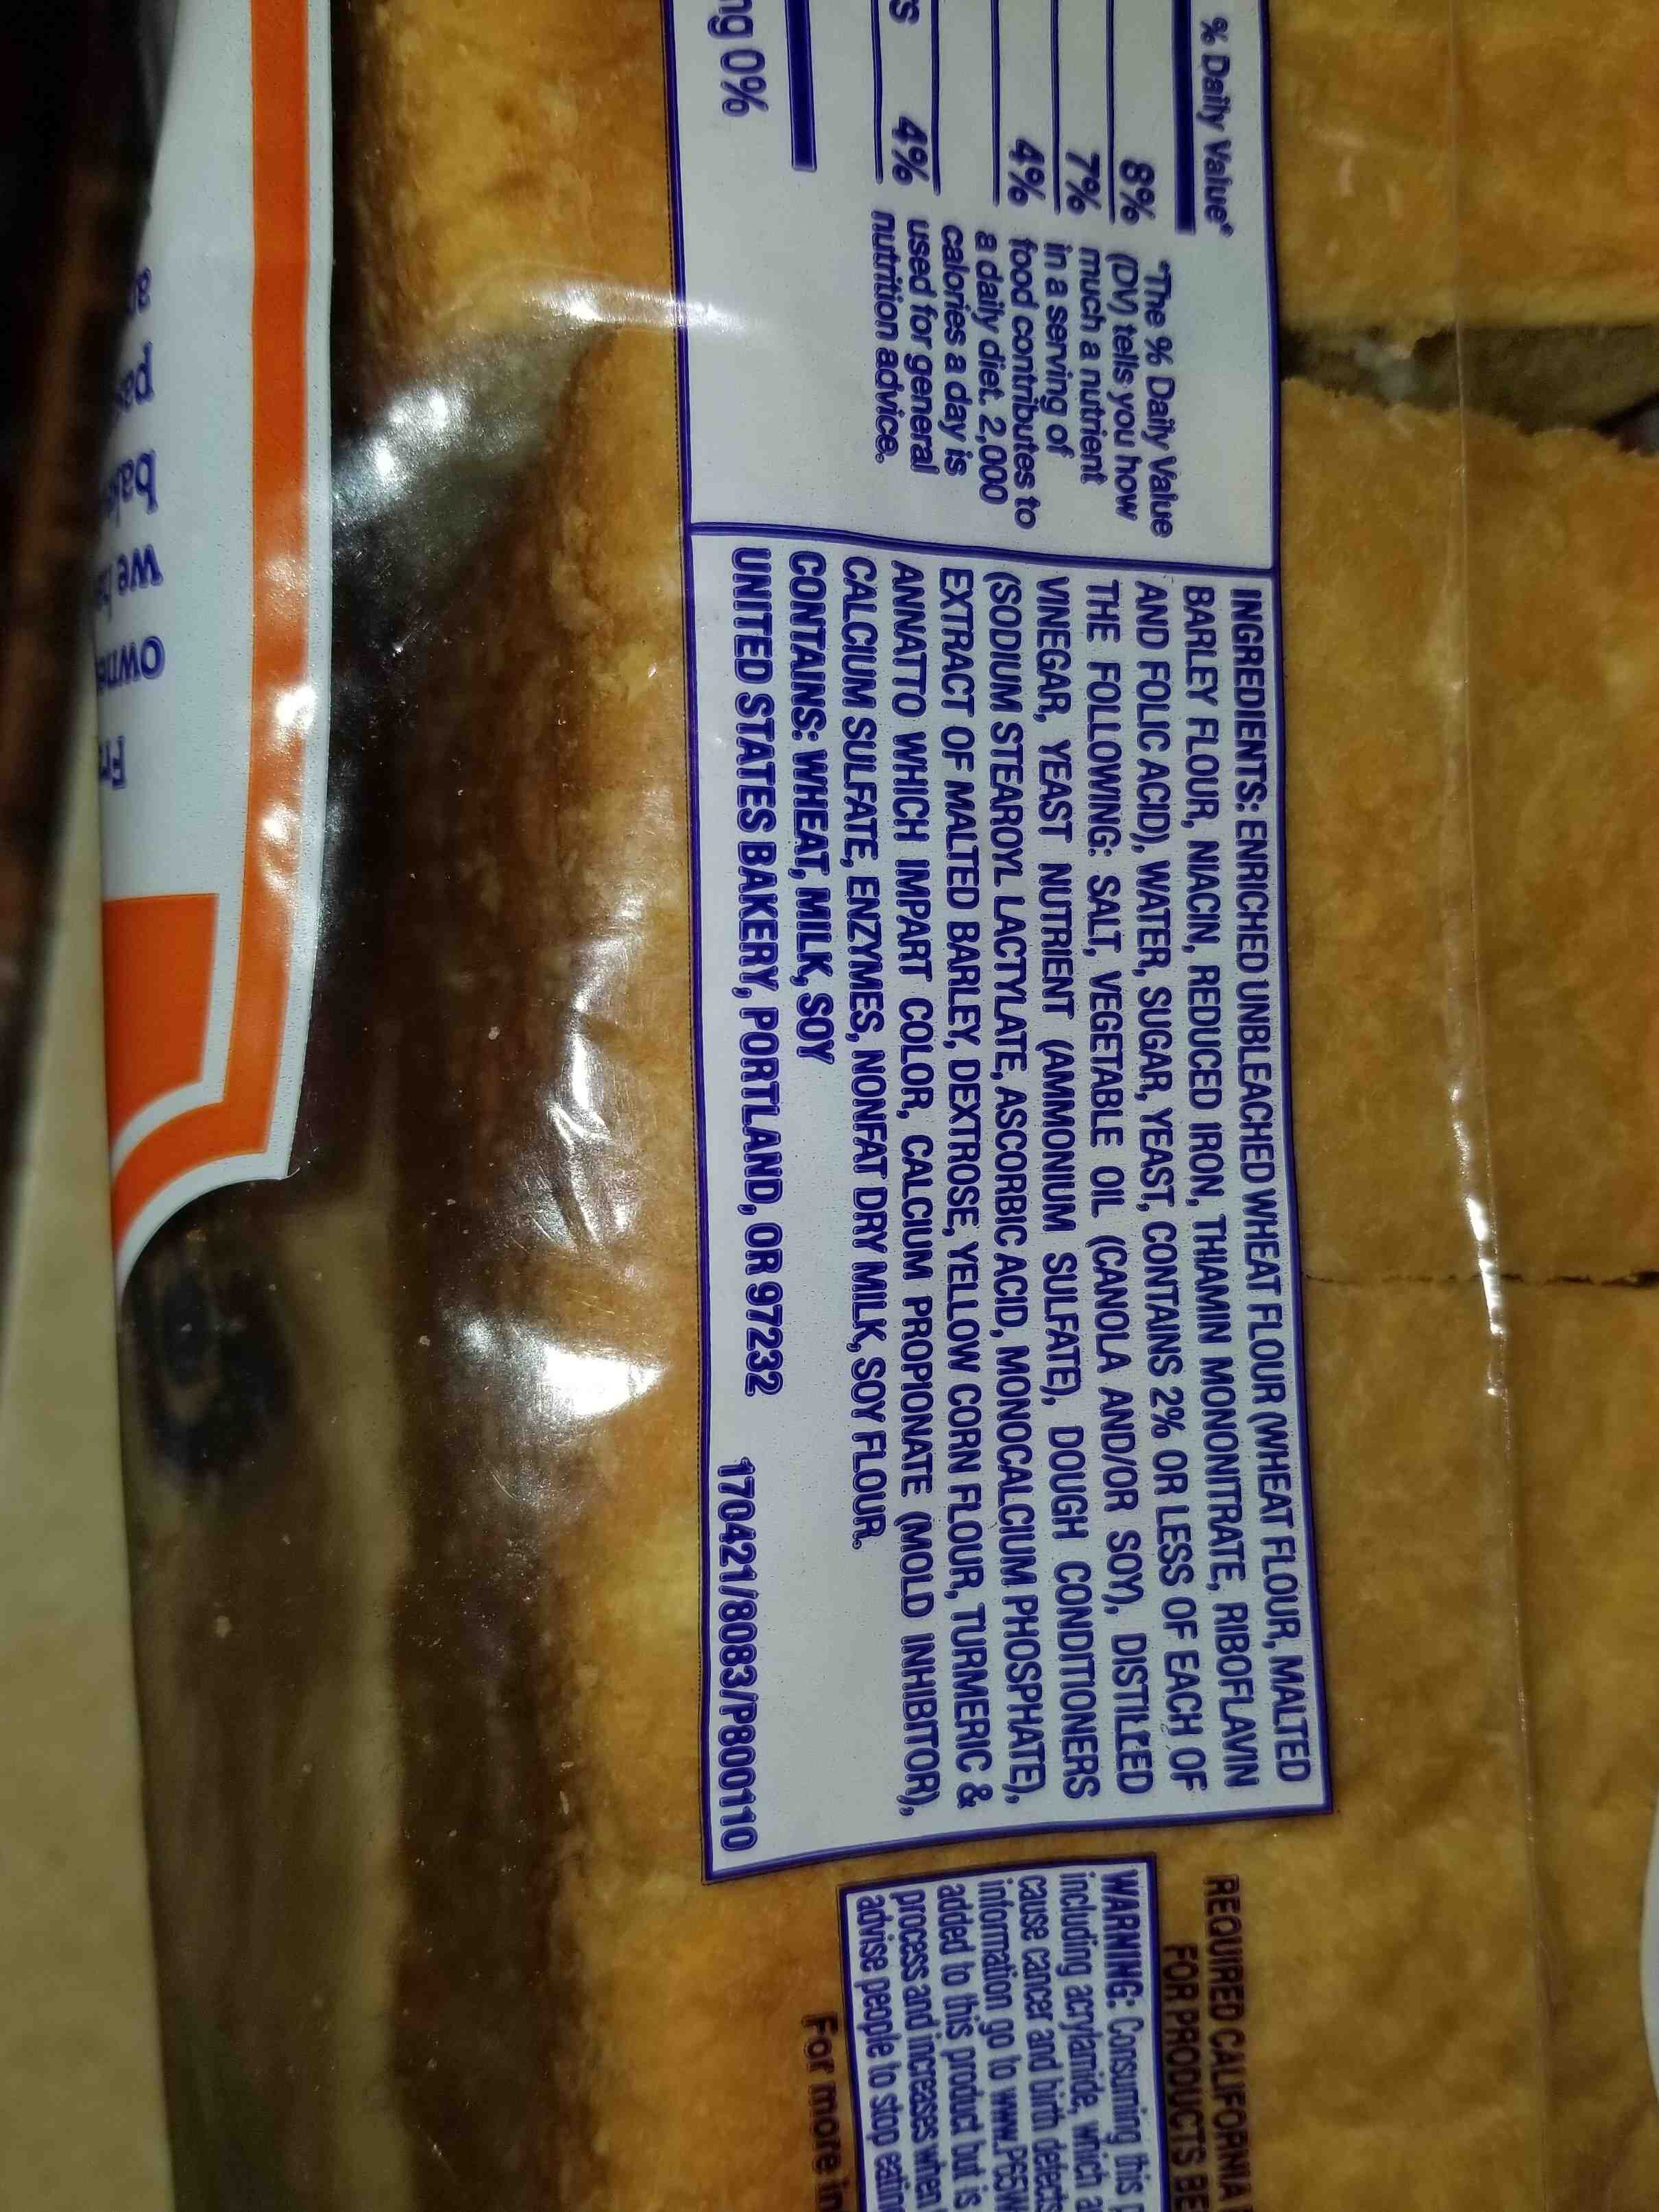 Thick sliced texas toast premium bread - Ingredients - en